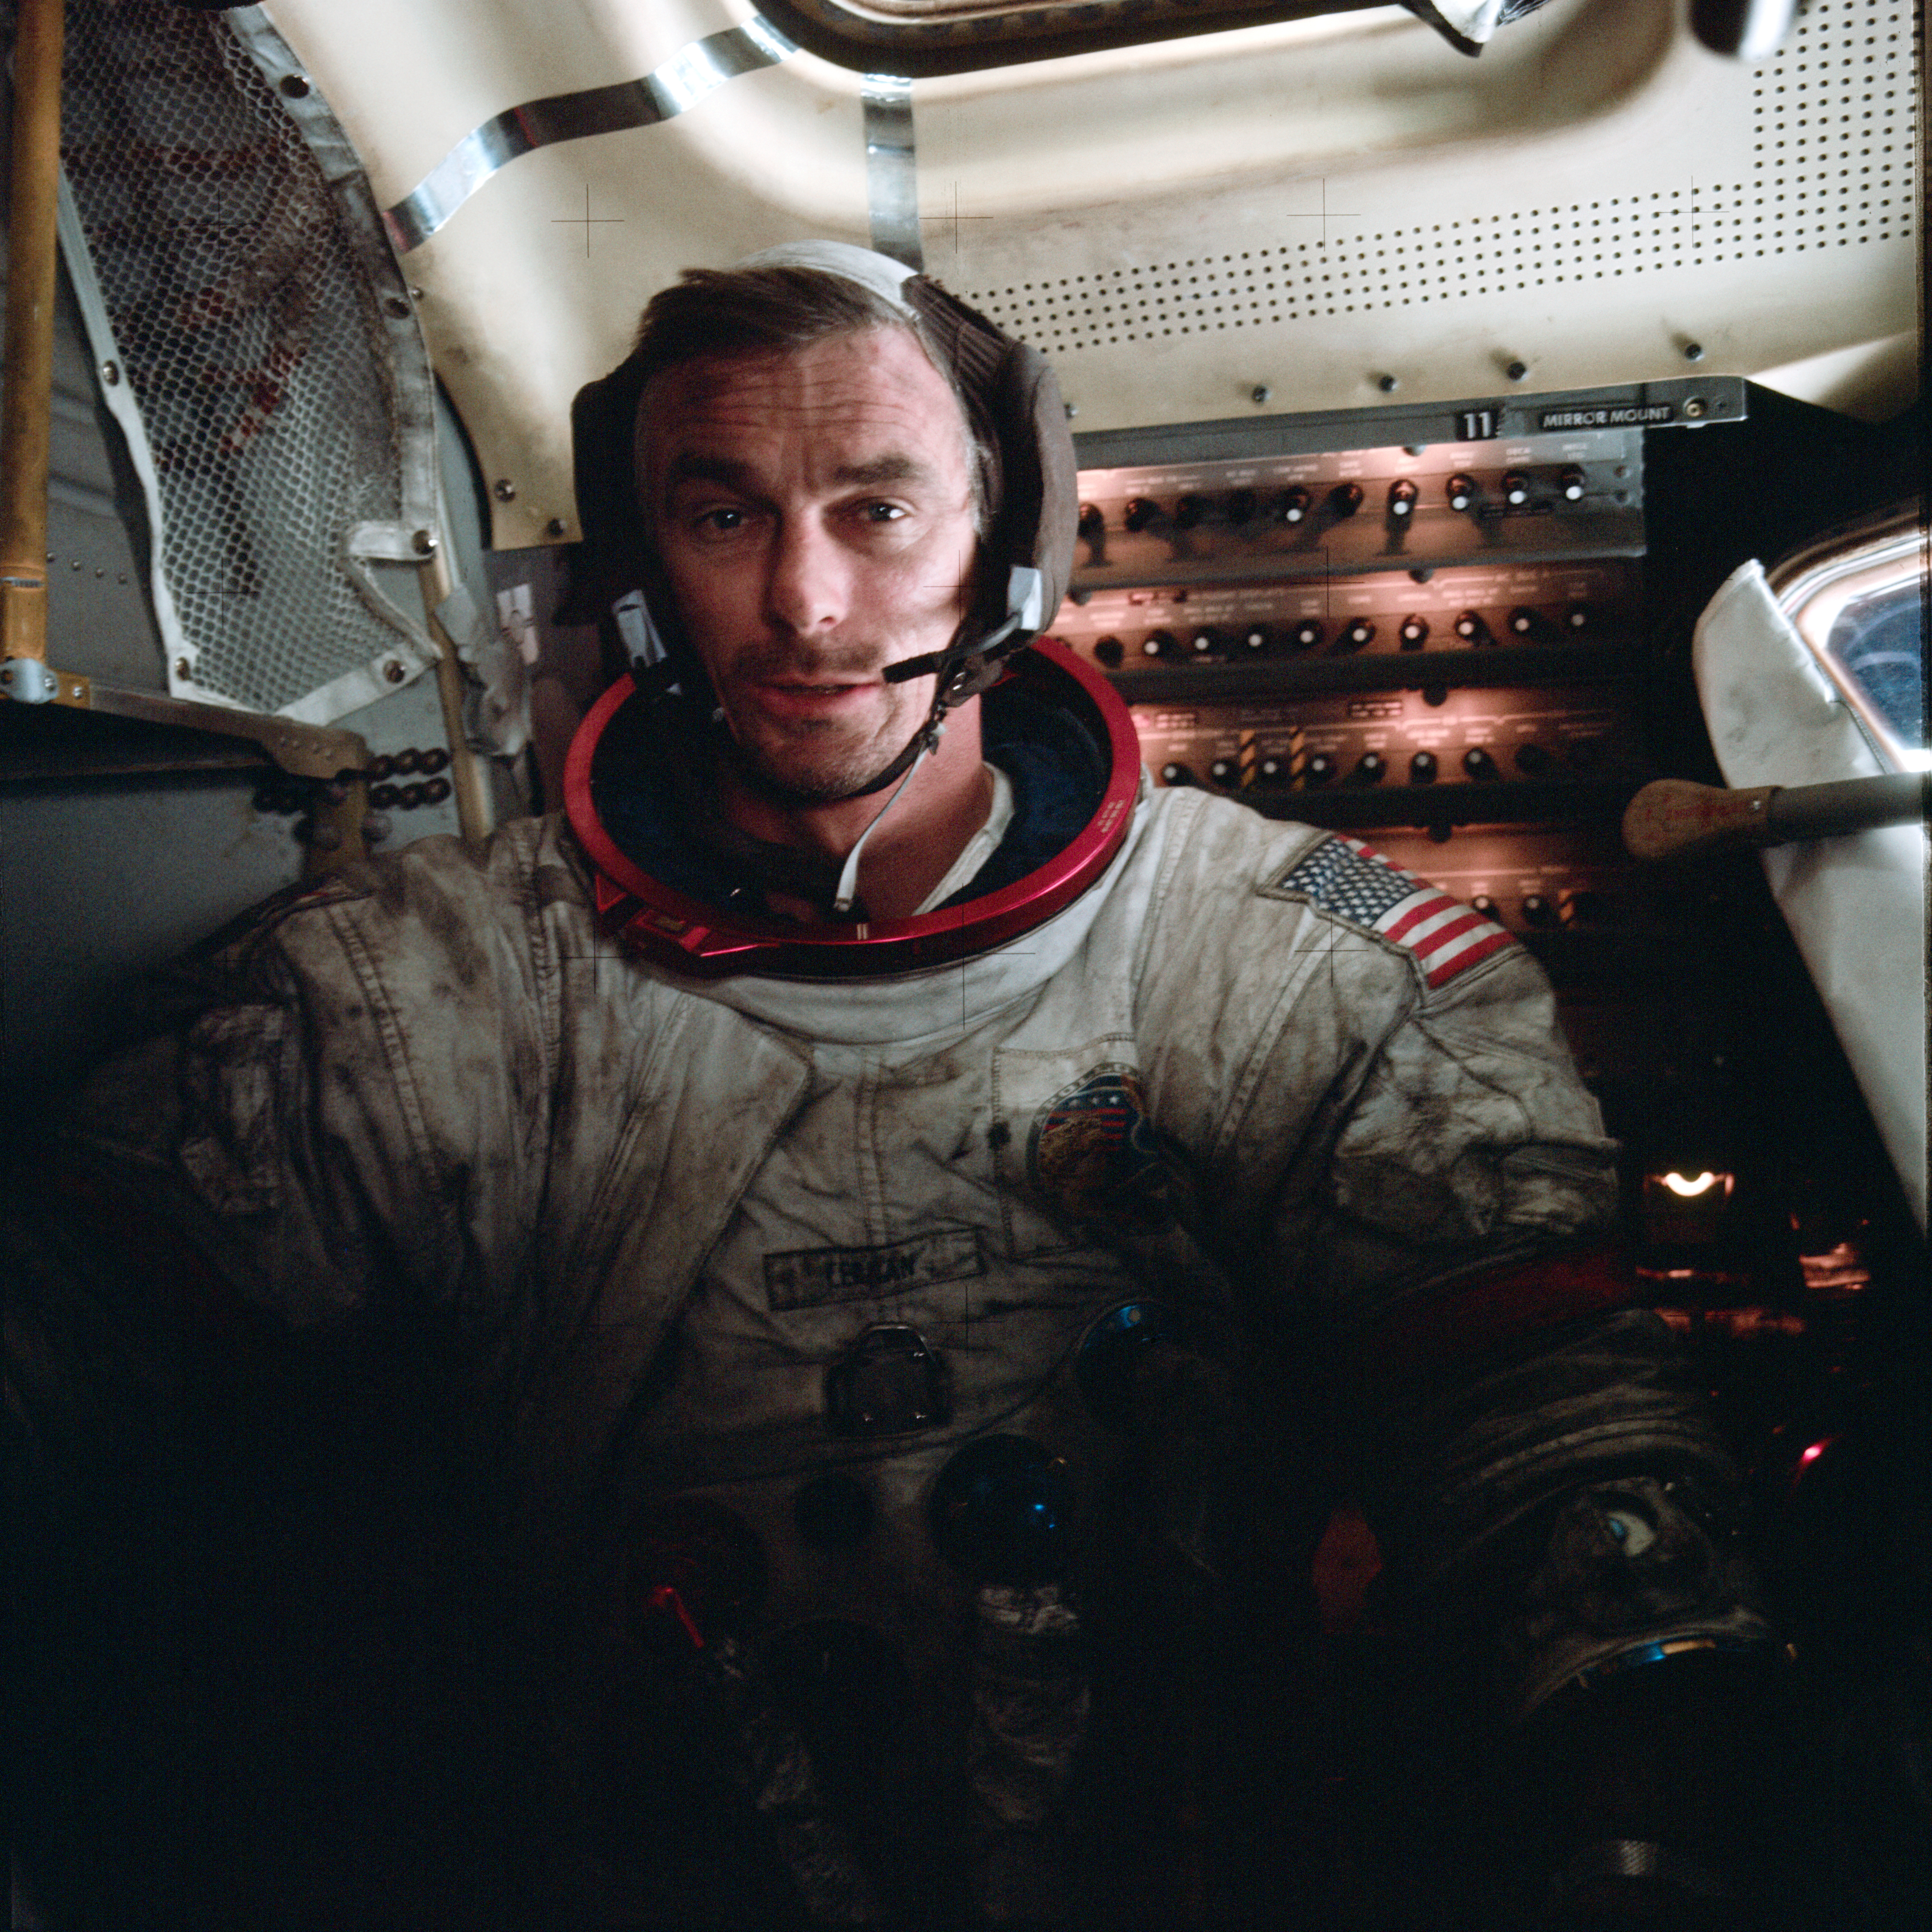 """""""Another hundred years may pass before we understand the true significance of Apollo. Lunar exploration was not the equivalent of an American pyramid, some idle monument to technology, but more of a Rosetta stone, a key to unlocking dreams as yet undreamed.""""  Eugene Cernan.   Here is a picture of him on the surface of the moon  Here is a link to a PDF copy of Wernher von Braun's The Mars Project, which was his proposal for how a crewed Mars mission should be conducted, which at one point was the goal following Apollo. As far as I am aware, this is the only copy on the internet."""